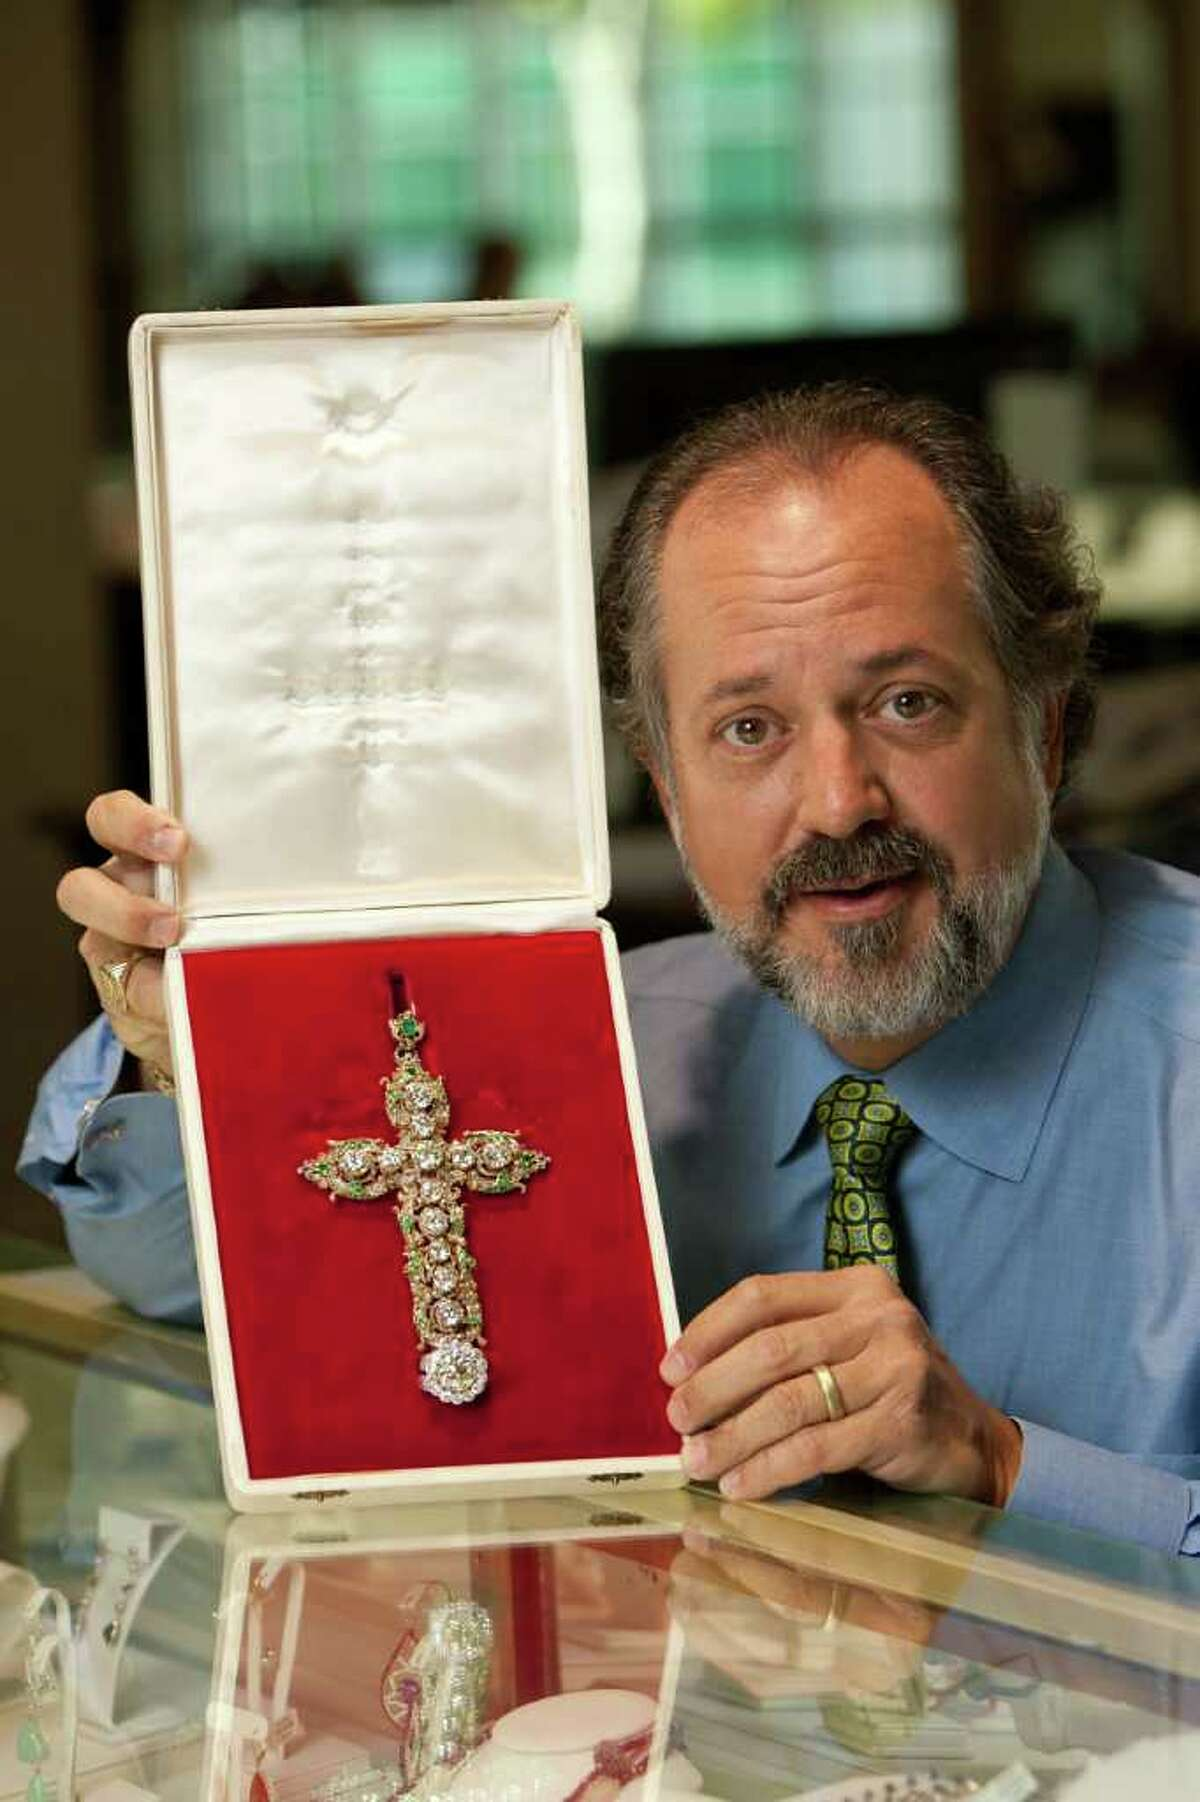 Alan Perry, owner of jewelry store Perry's Emporium, displays the papal jewelry he will be selling for a customer in Wilmington, NC, Wednesday, April 6, 2011. The jewelry belonged to Pope Pius XII and then Paul VI who donated it to the United Nations to be auctioned as a fundraiser in 1965. The current owner of the jewelry lives in Wilmington. (AP Photo/Logan Wallace)